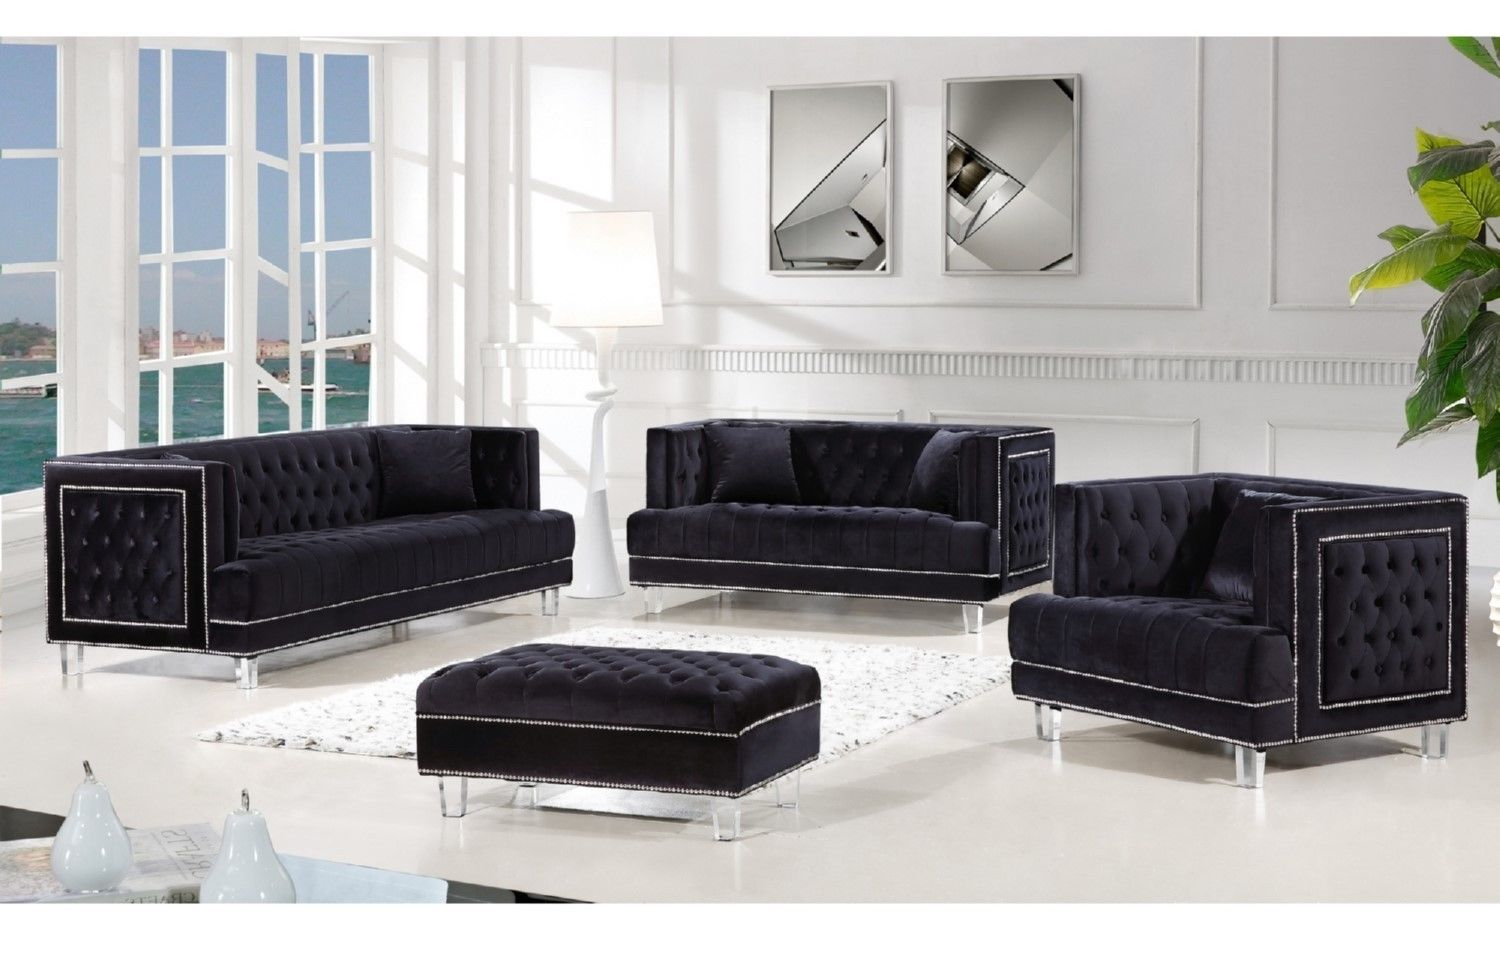 2649 99 3pcs Set Living Room Tufted Sofa Loveseat Chair